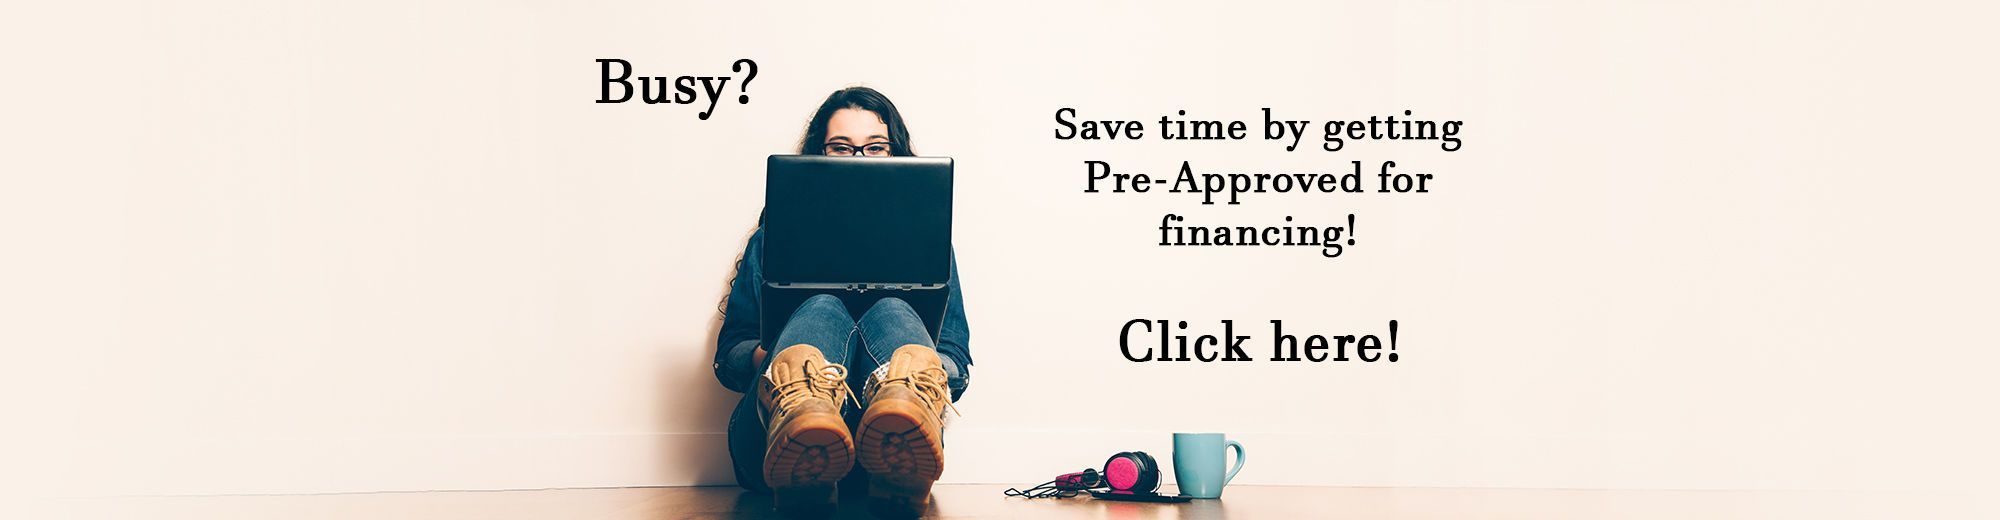 Save Time and Get Pre-Approved for Financing Today!